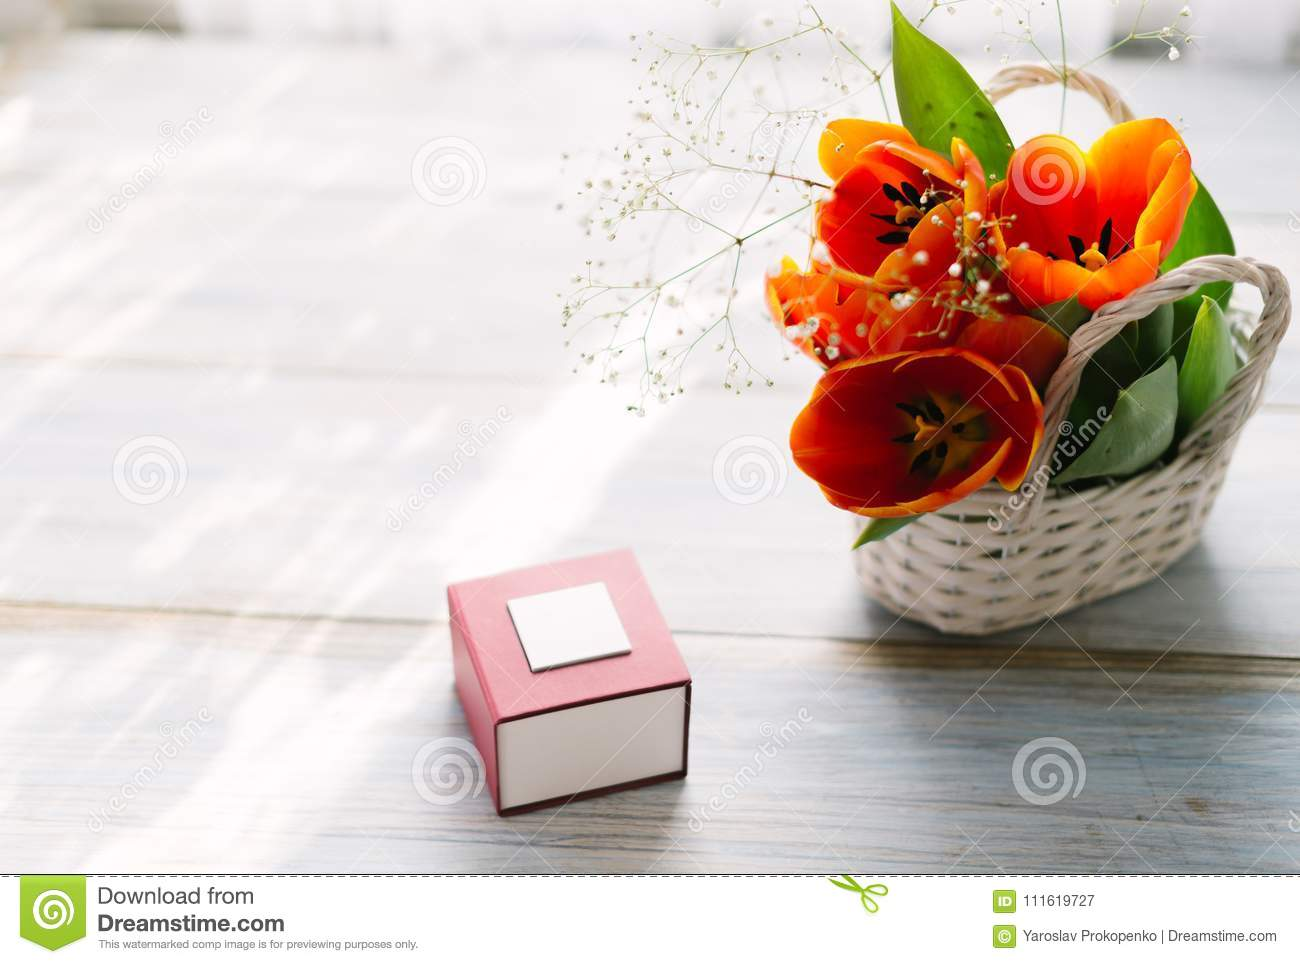 Tulips in a basket on a white wooden background